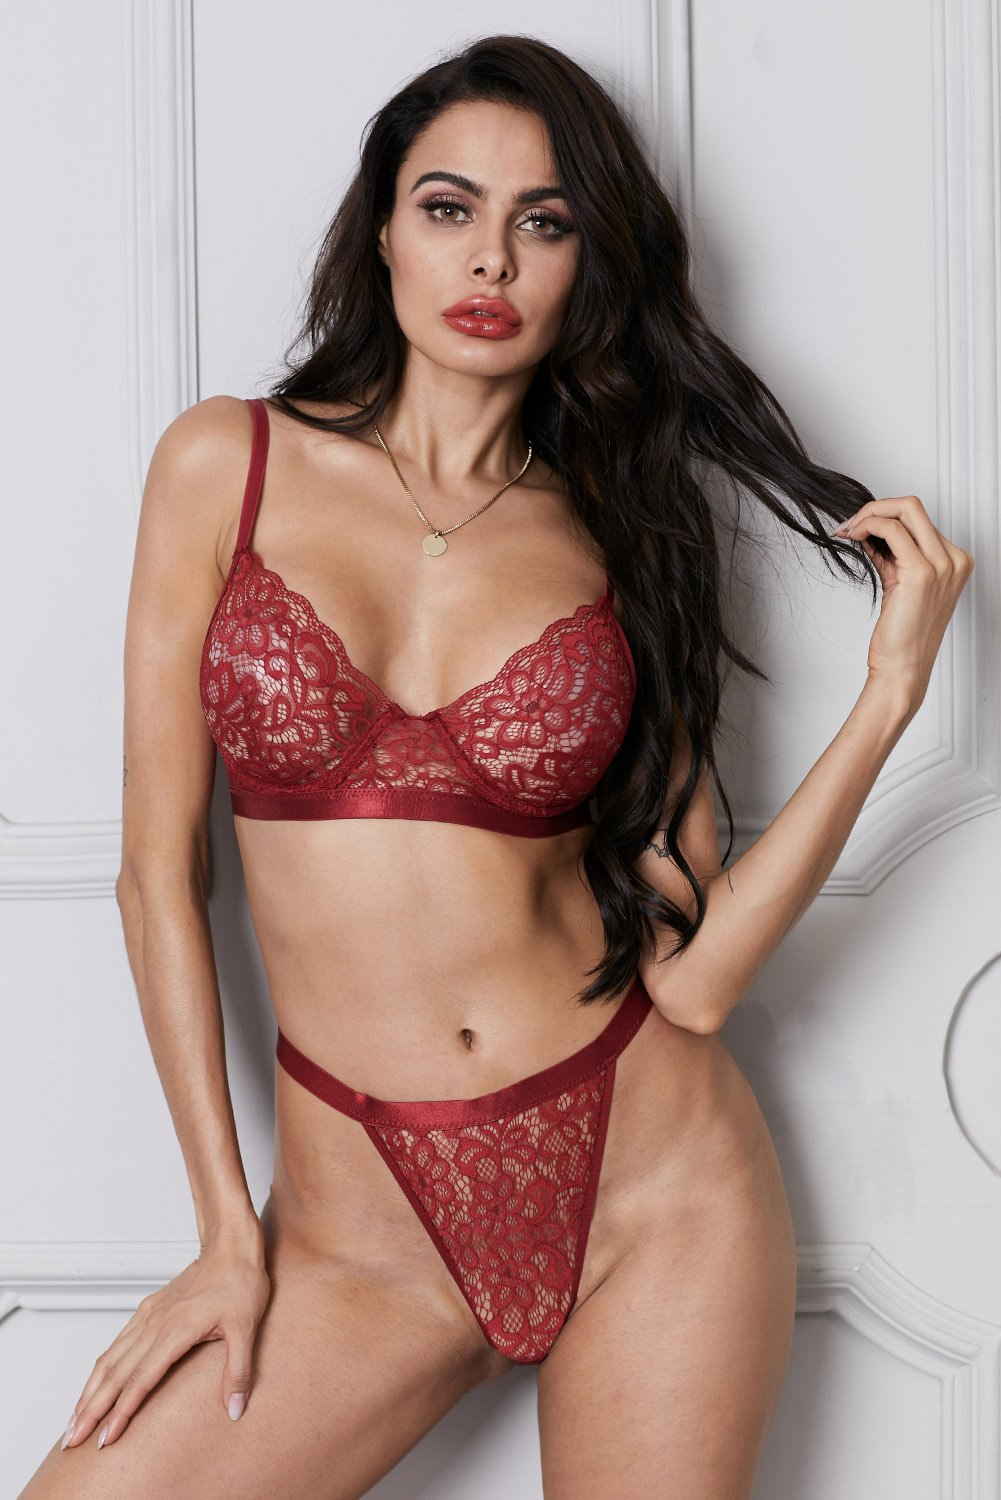 Red Romantic Night Lace Lingerie Bralette Set